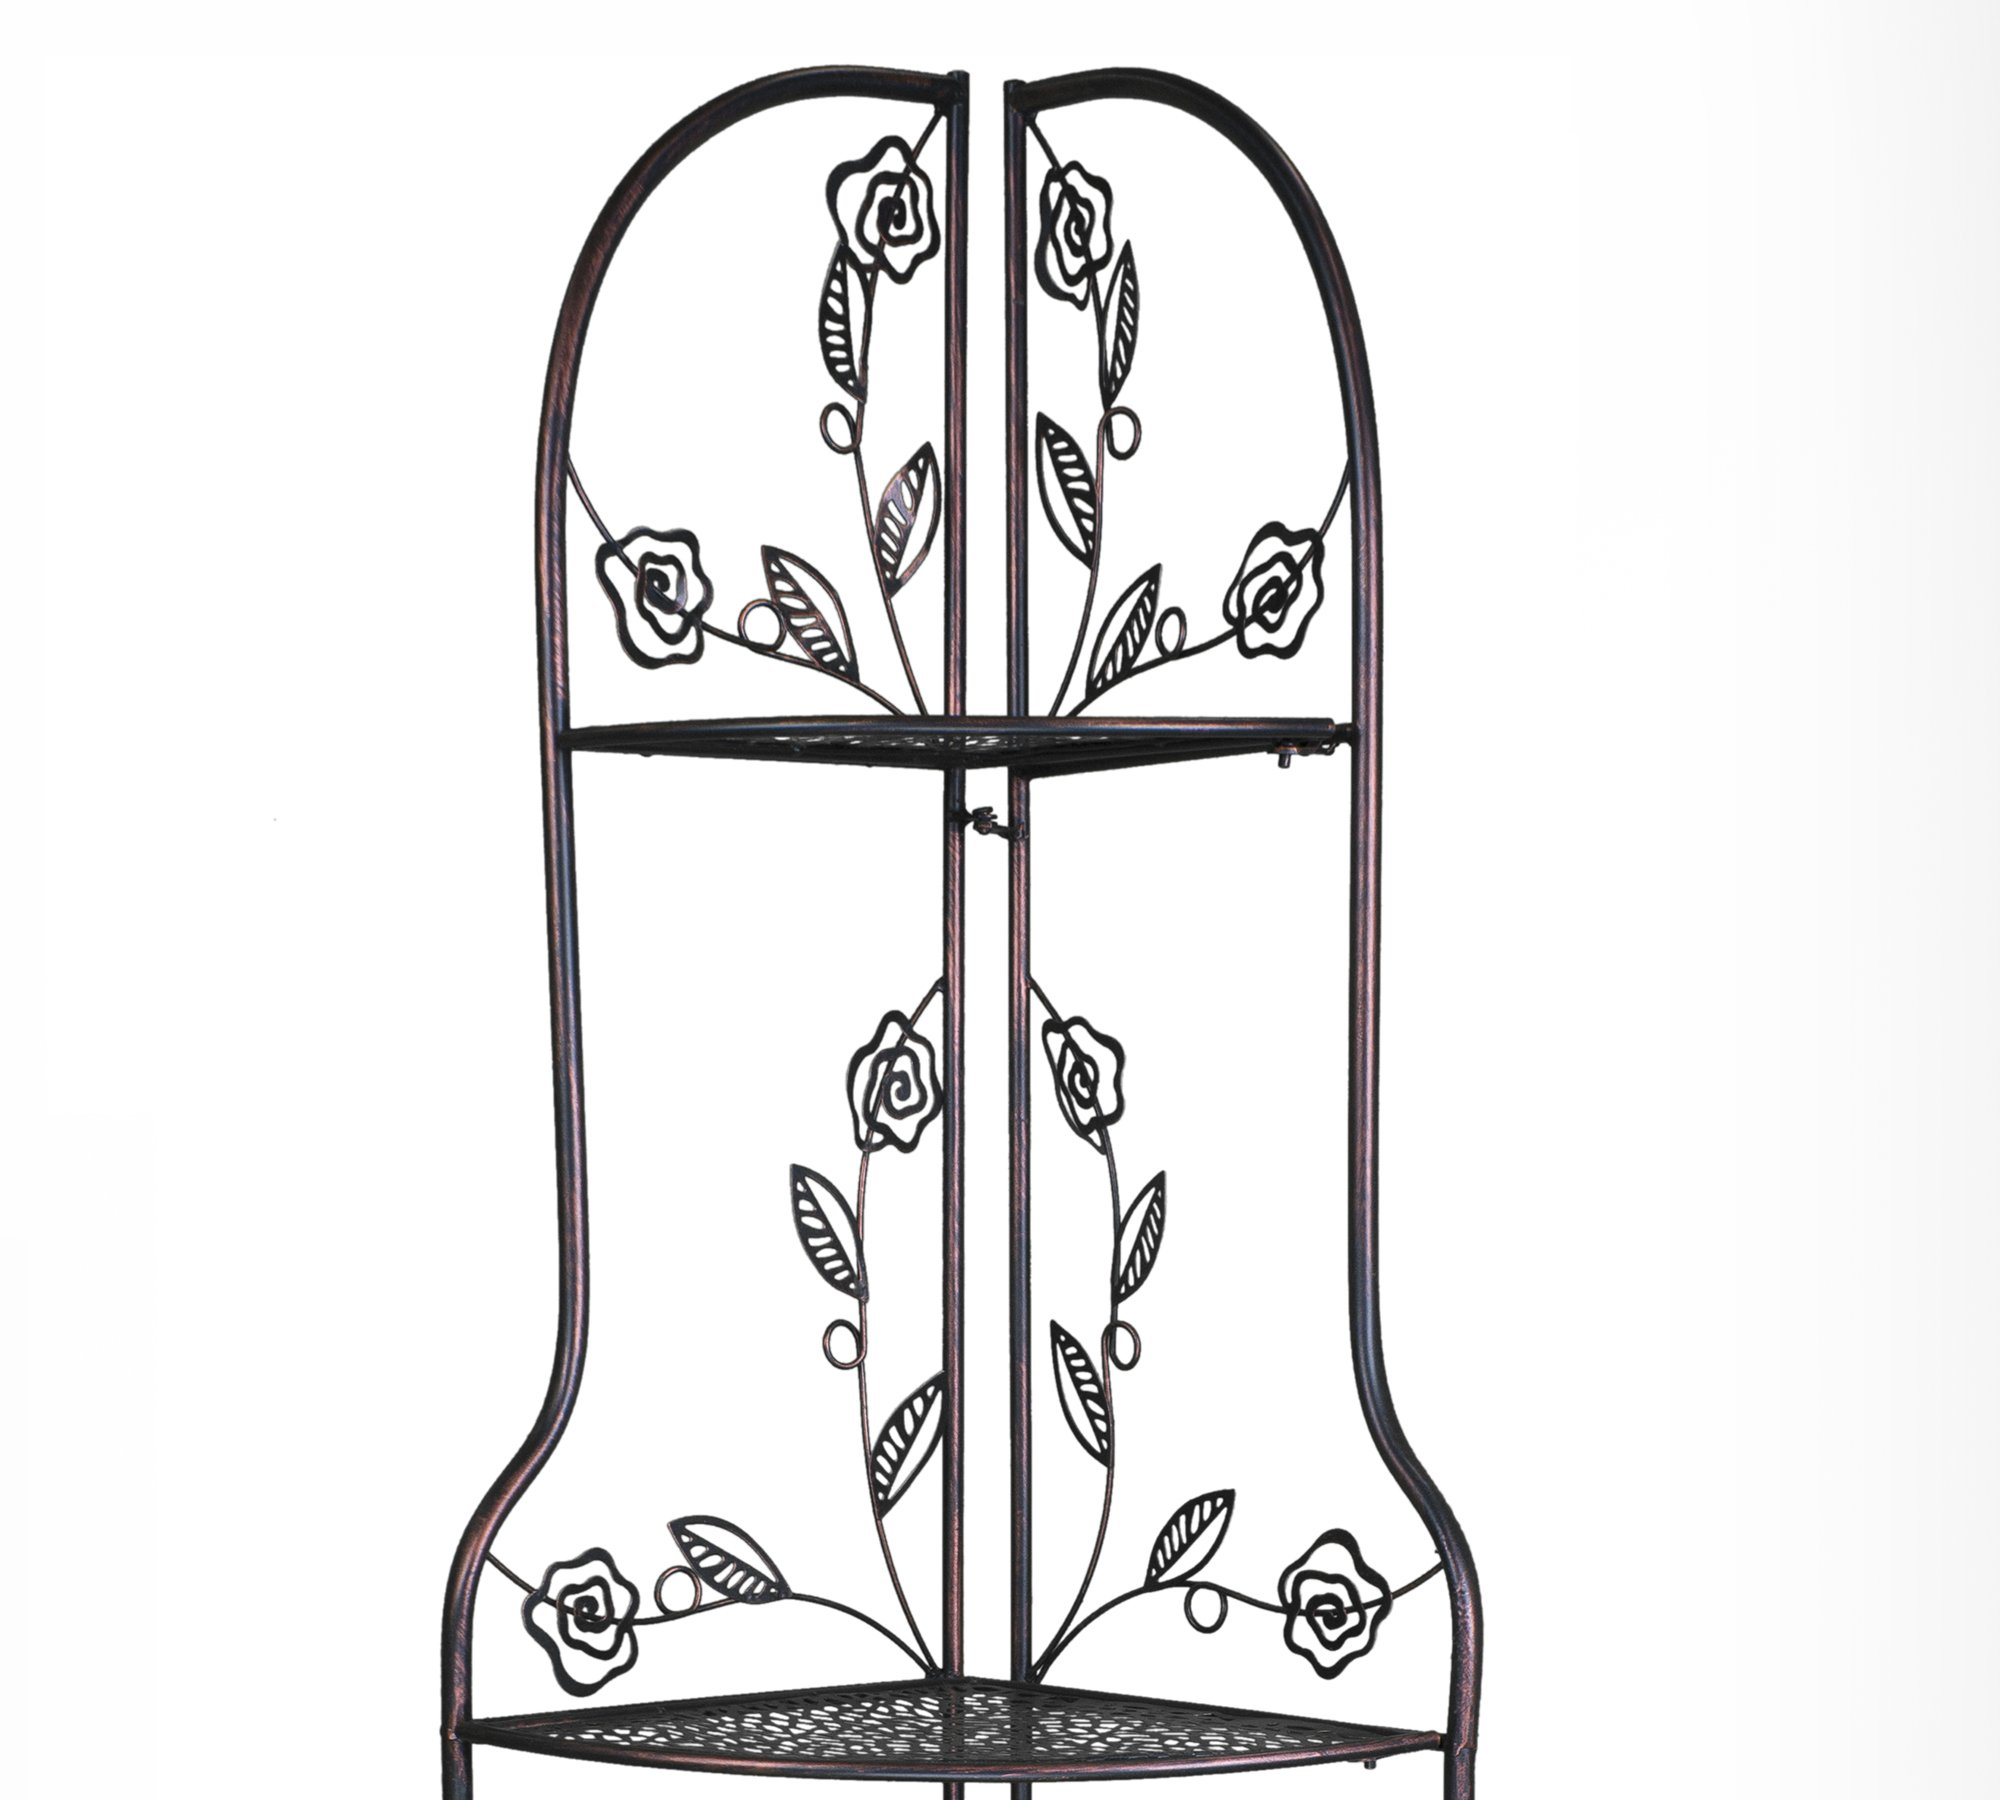 Heather Ann Creations W190837-BC Rosa Kitchen Corner Bakers Rack, Blackened Copper by Heather Ann Creations (Image #5)